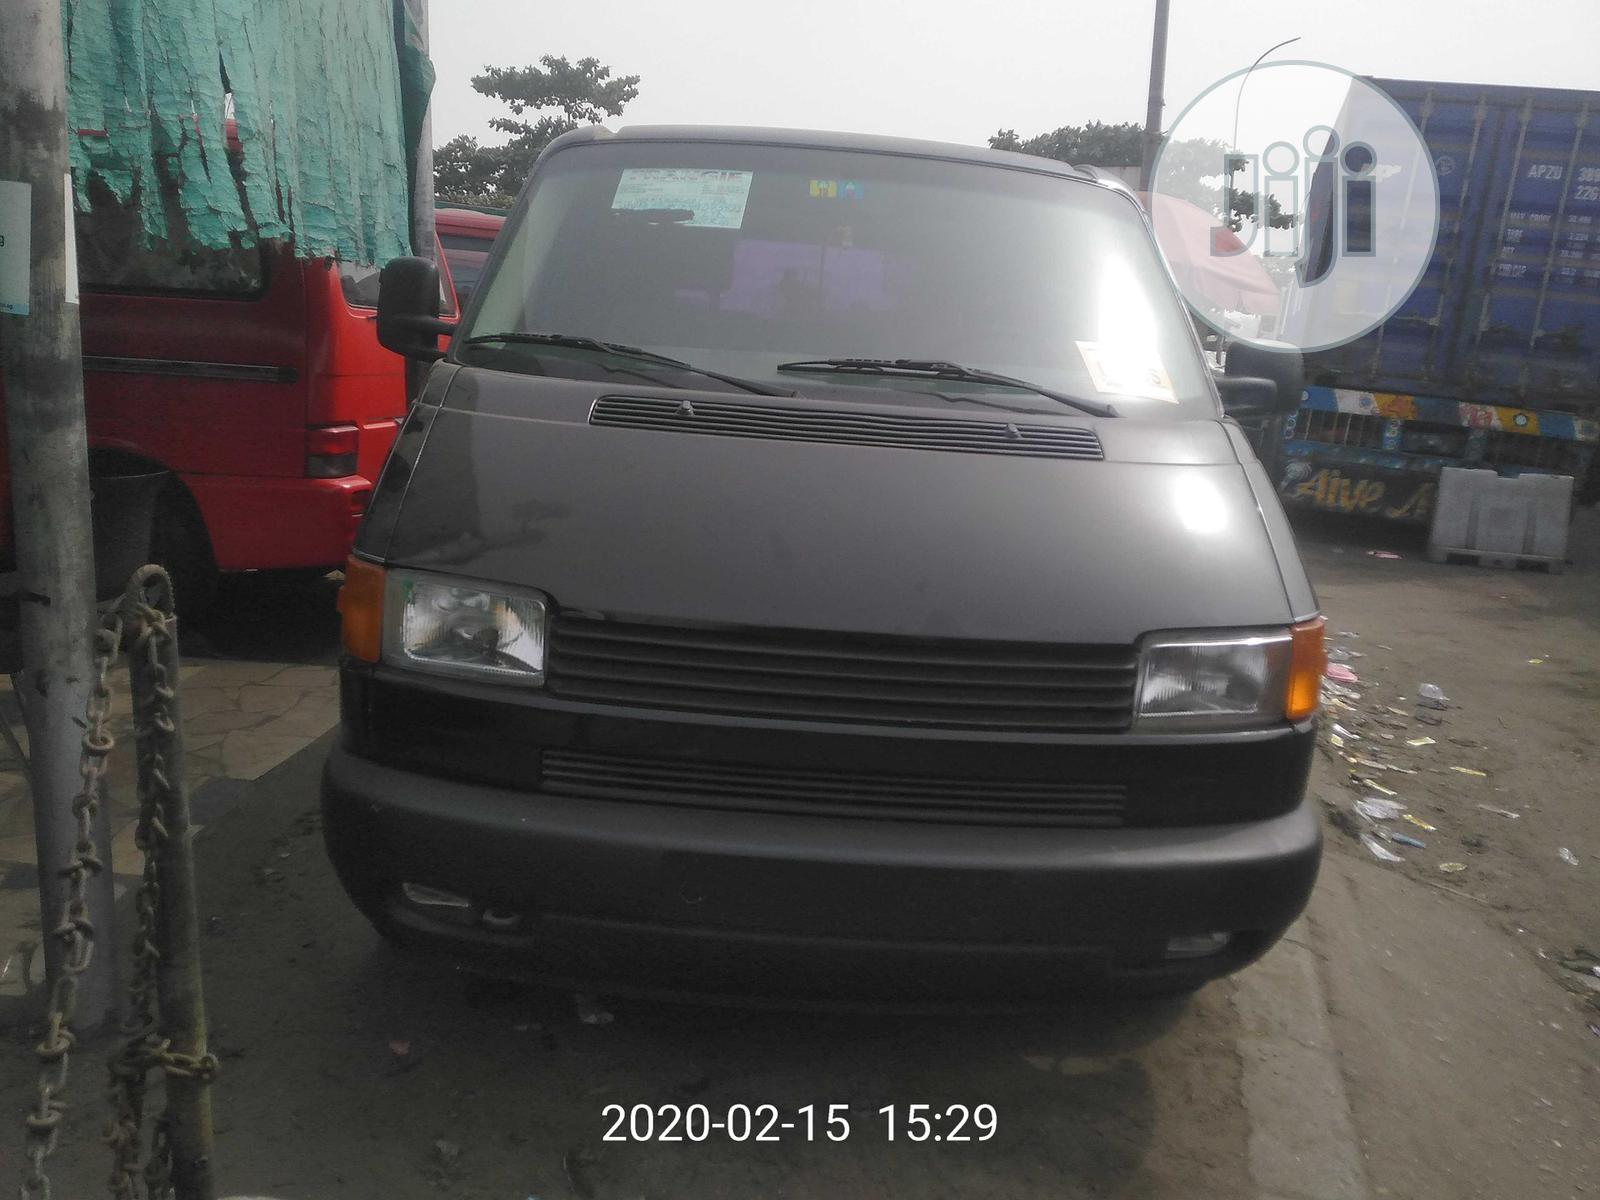 Very Clean And Sharp Volkswagen Transporter 2000 Black | Buses & Microbuses for sale in Apapa, Lagos State, Nigeria